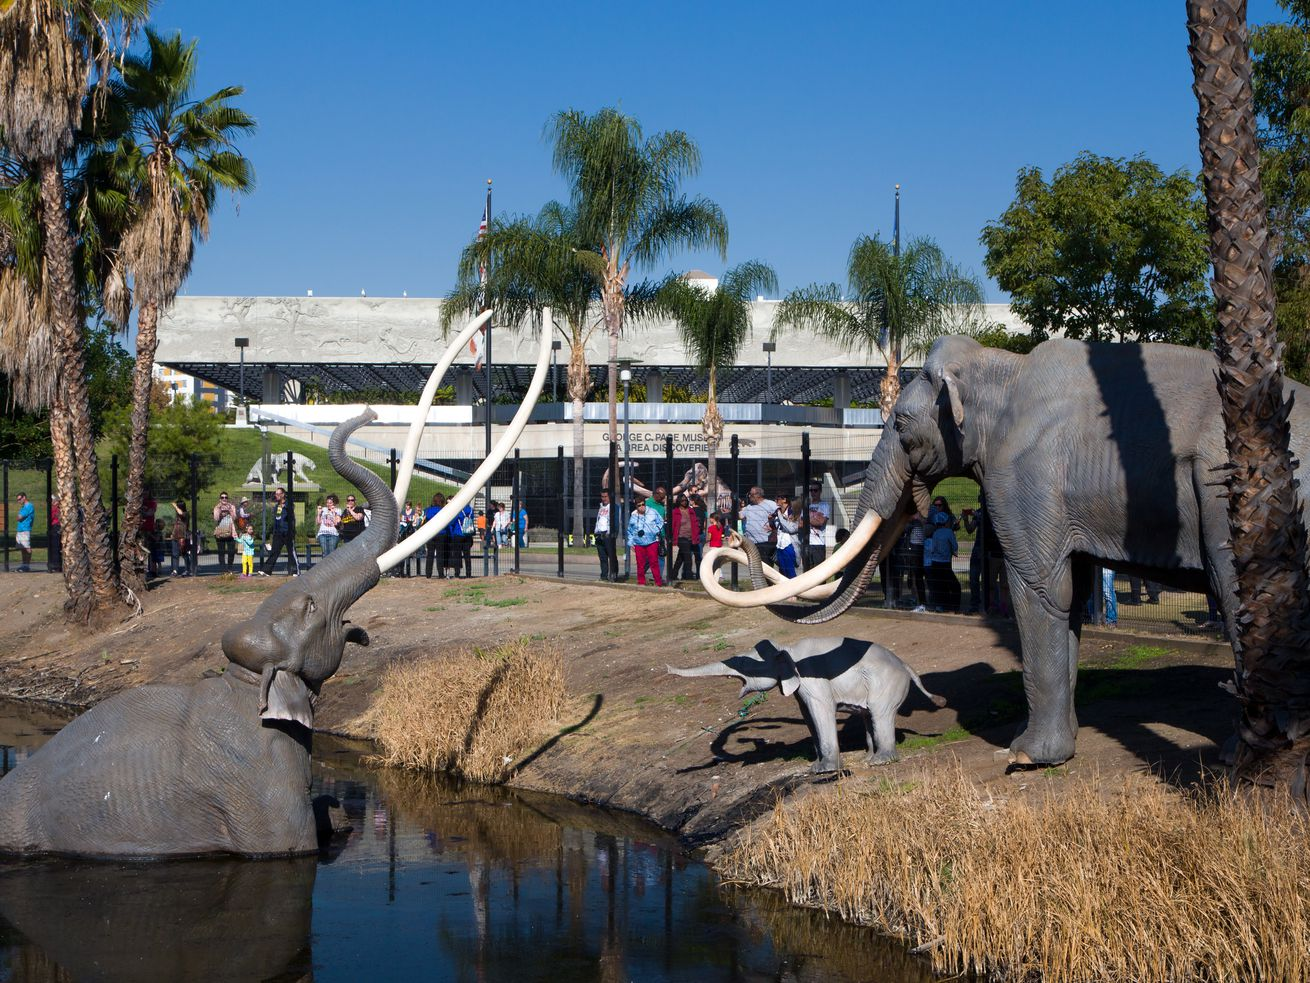 The 12-acre site includes the tar pits and George C. Page museum.